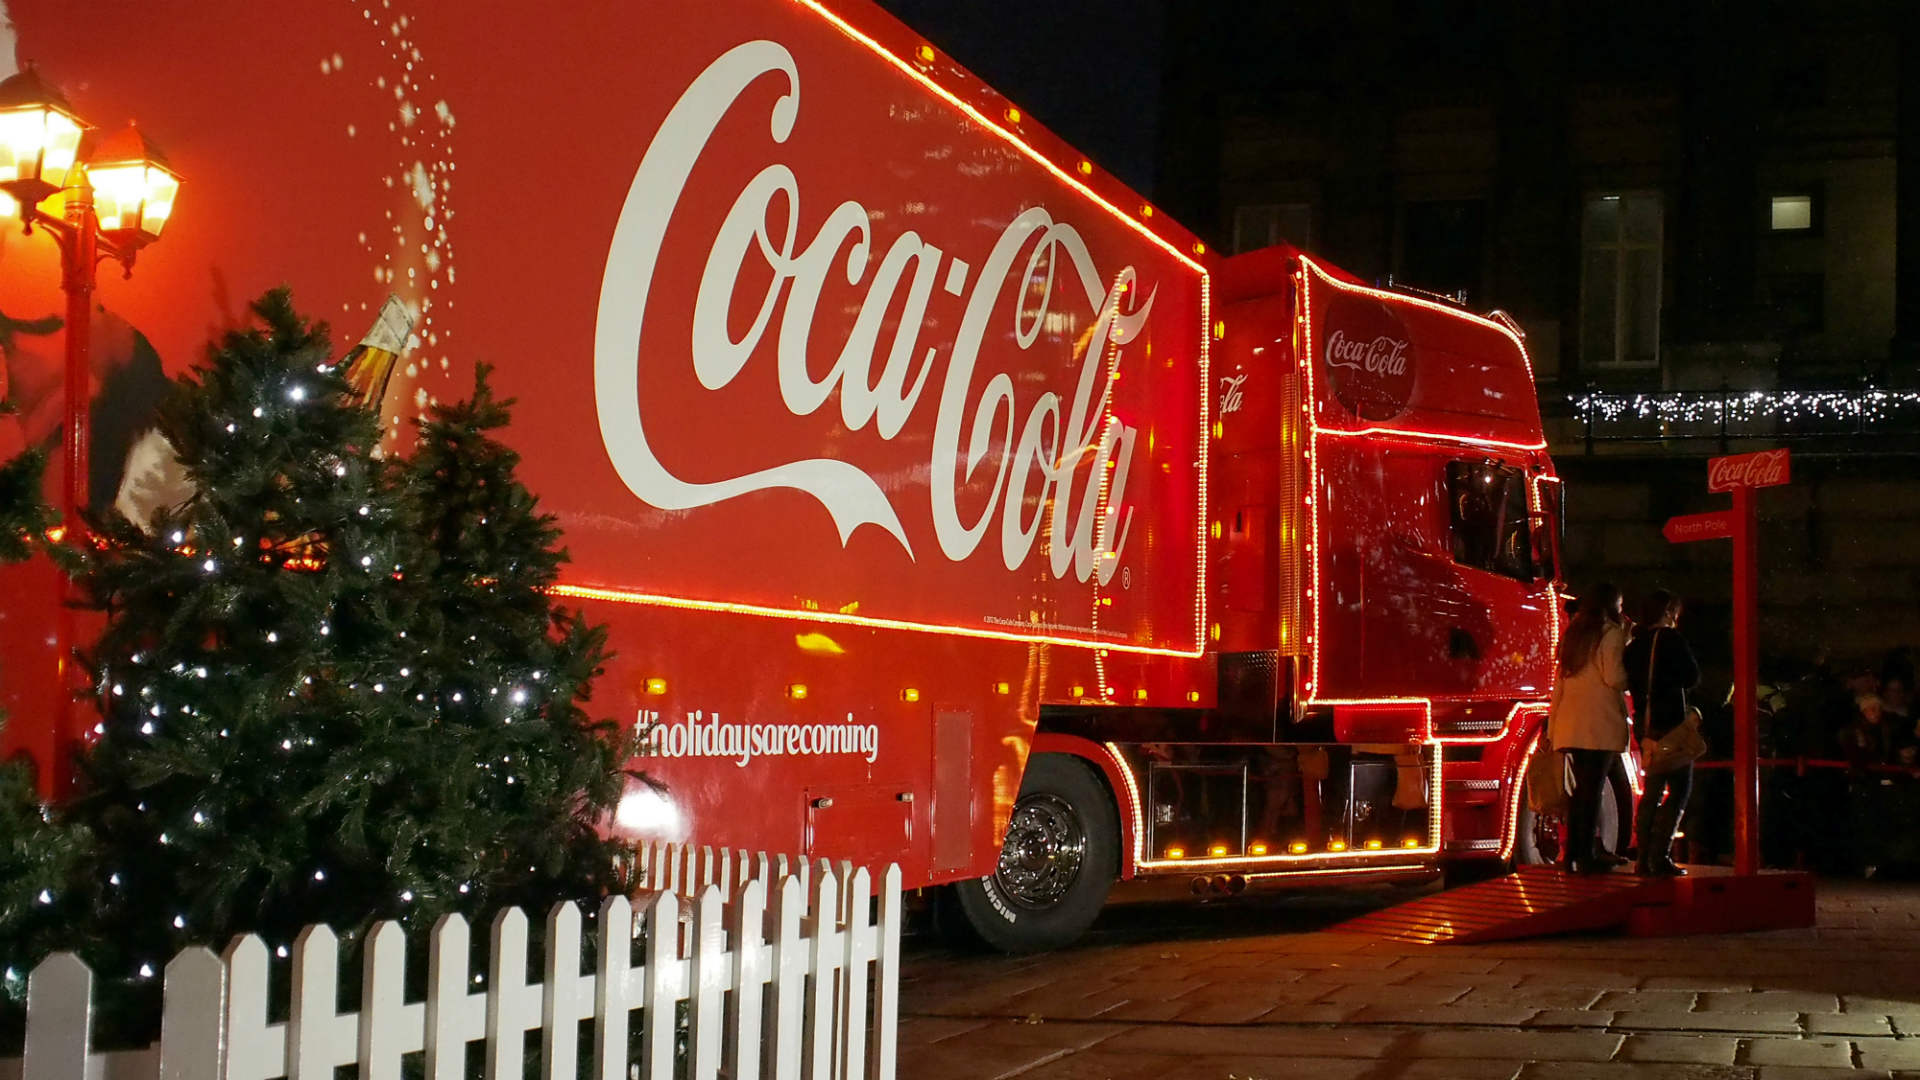 Coca-Cola Christmas lorry